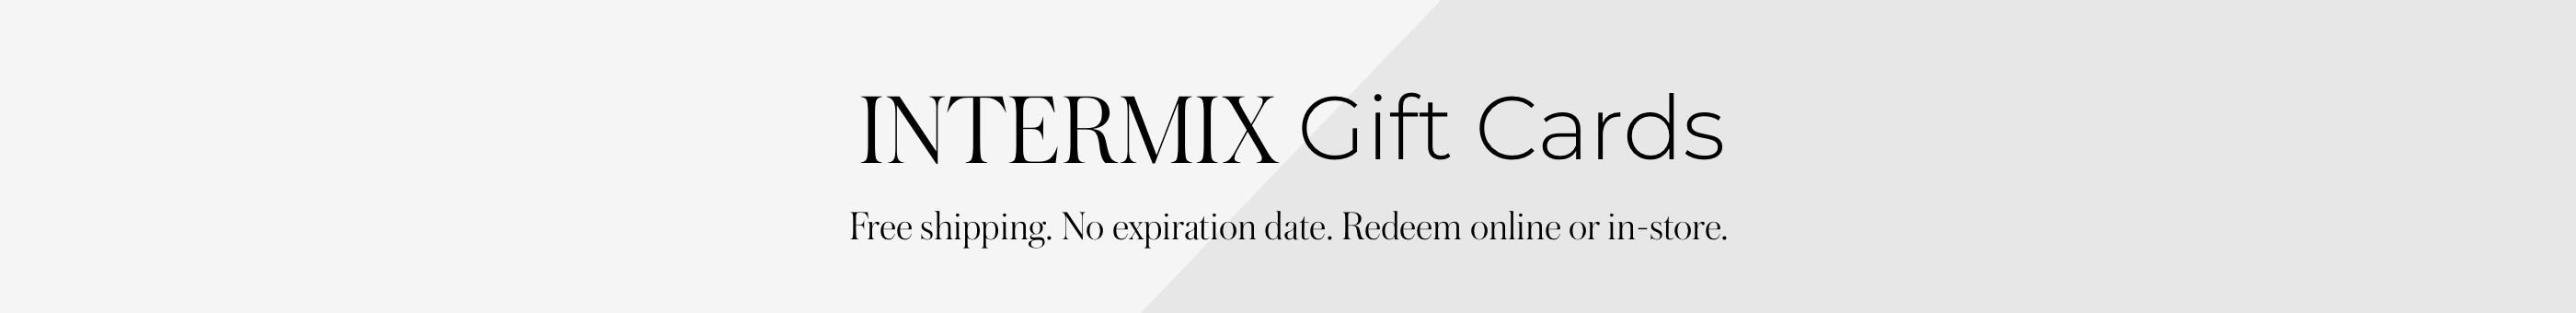 Introducing INTERMIX eGift Cards Easy to give, amazing to receive. It's the gift that always fits